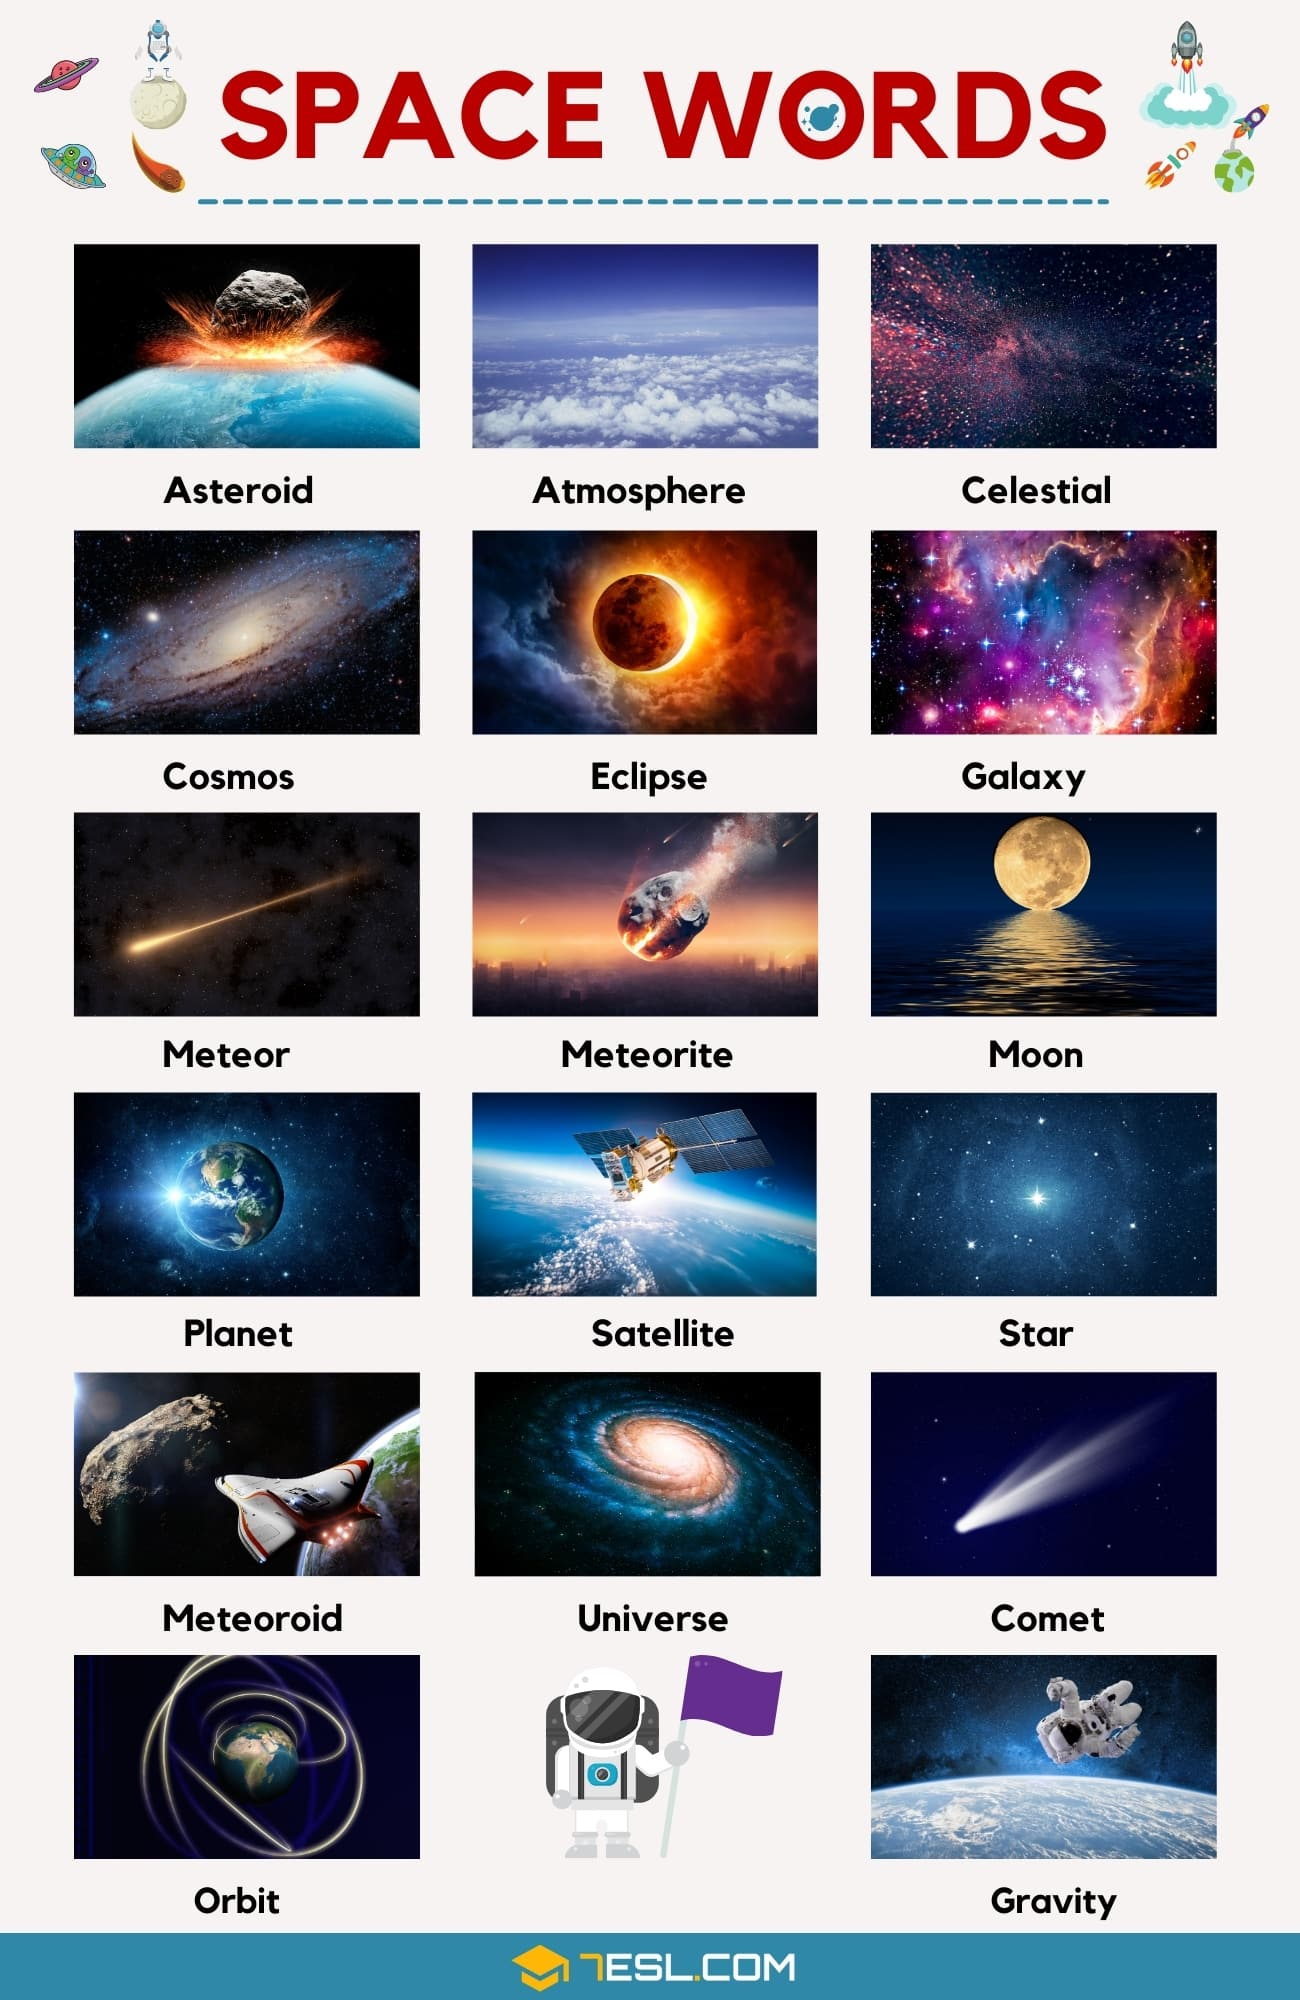 Space Words | List of Interesting Words Related to the Space